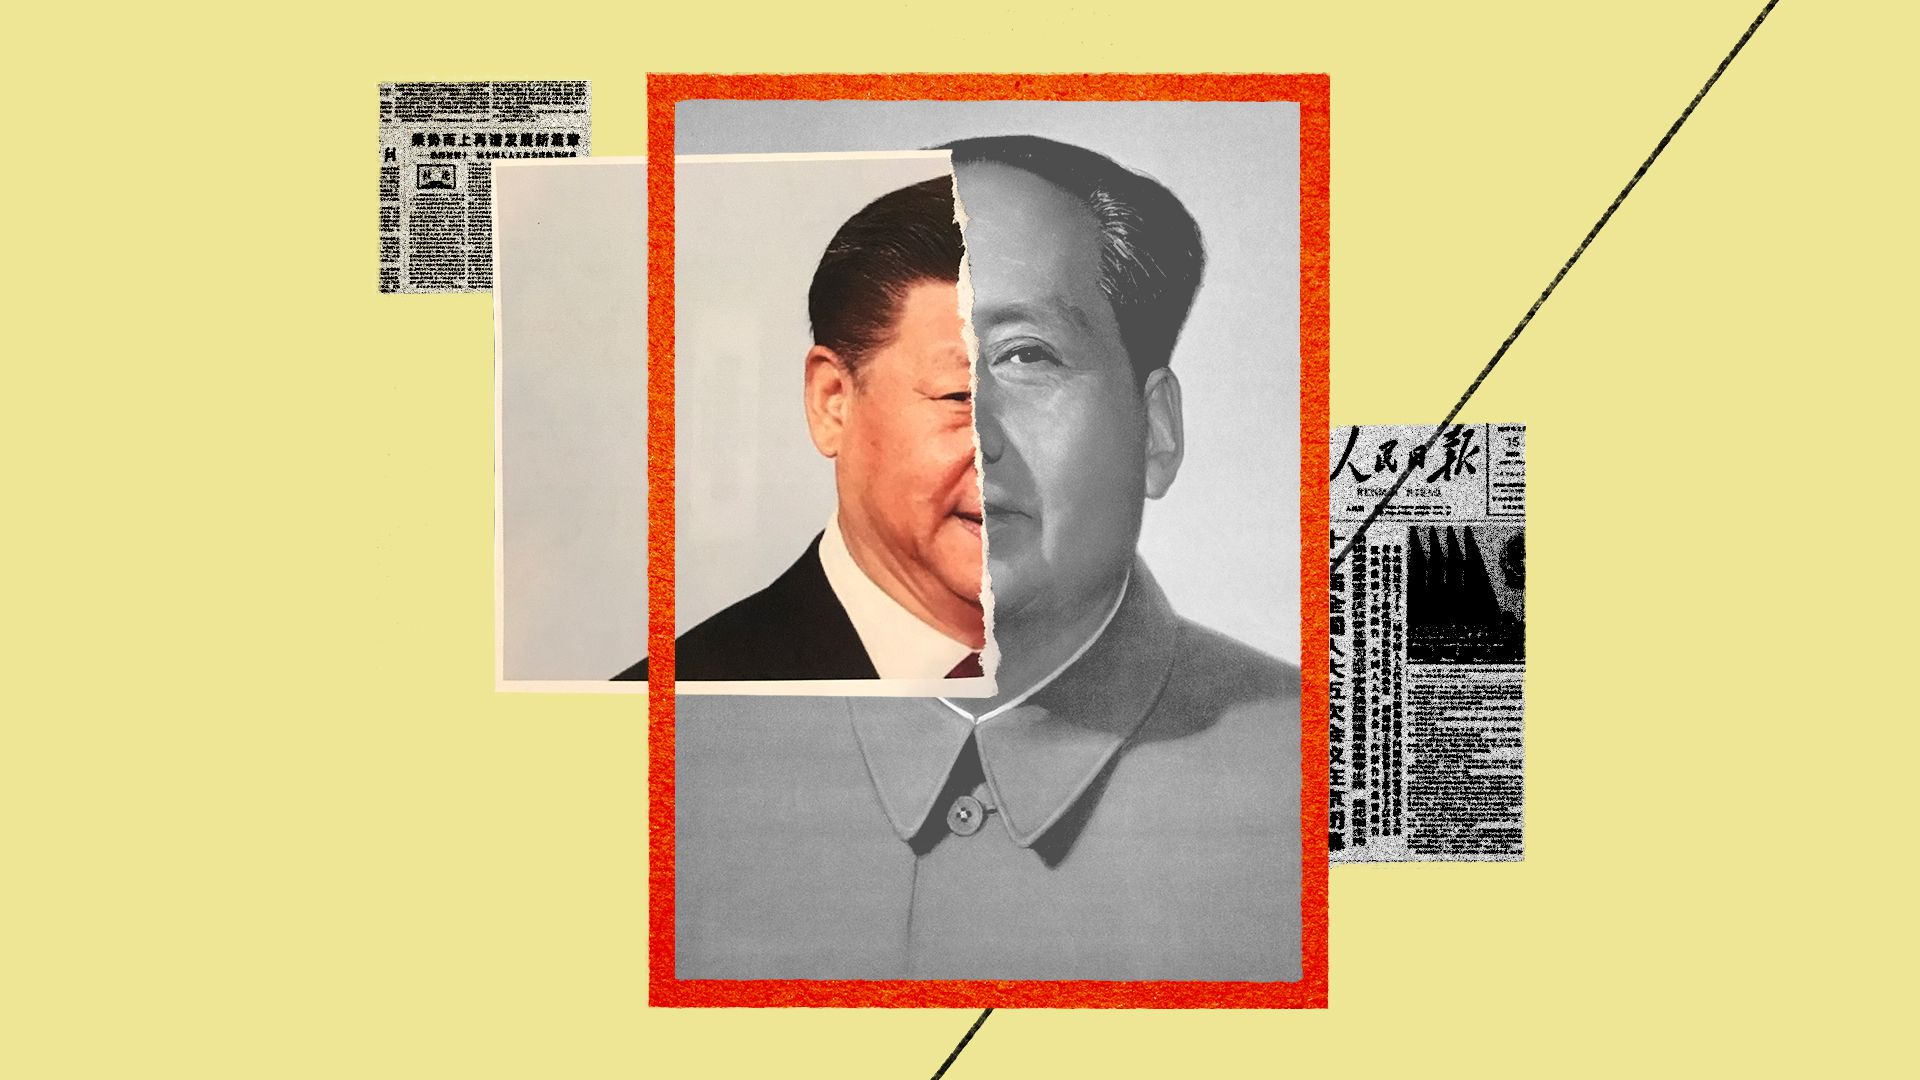 Illustration of Mao/Xi photos merged together